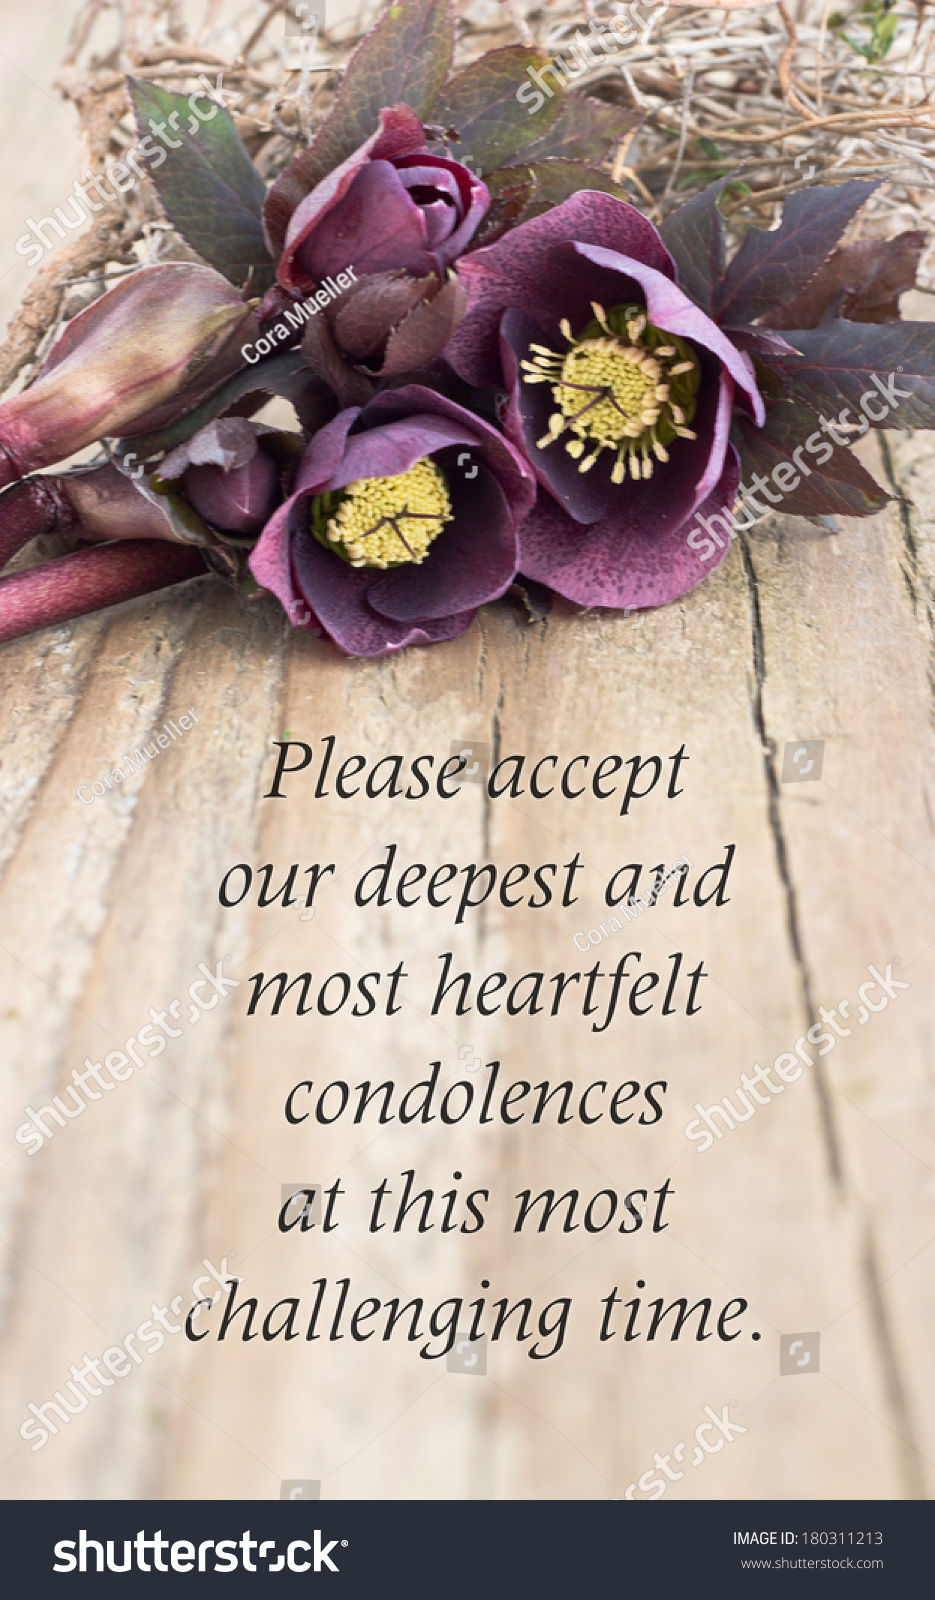 condolence card  with dark christroses/please accept our deepest and most heartfelt condolences at this most challenging time/english